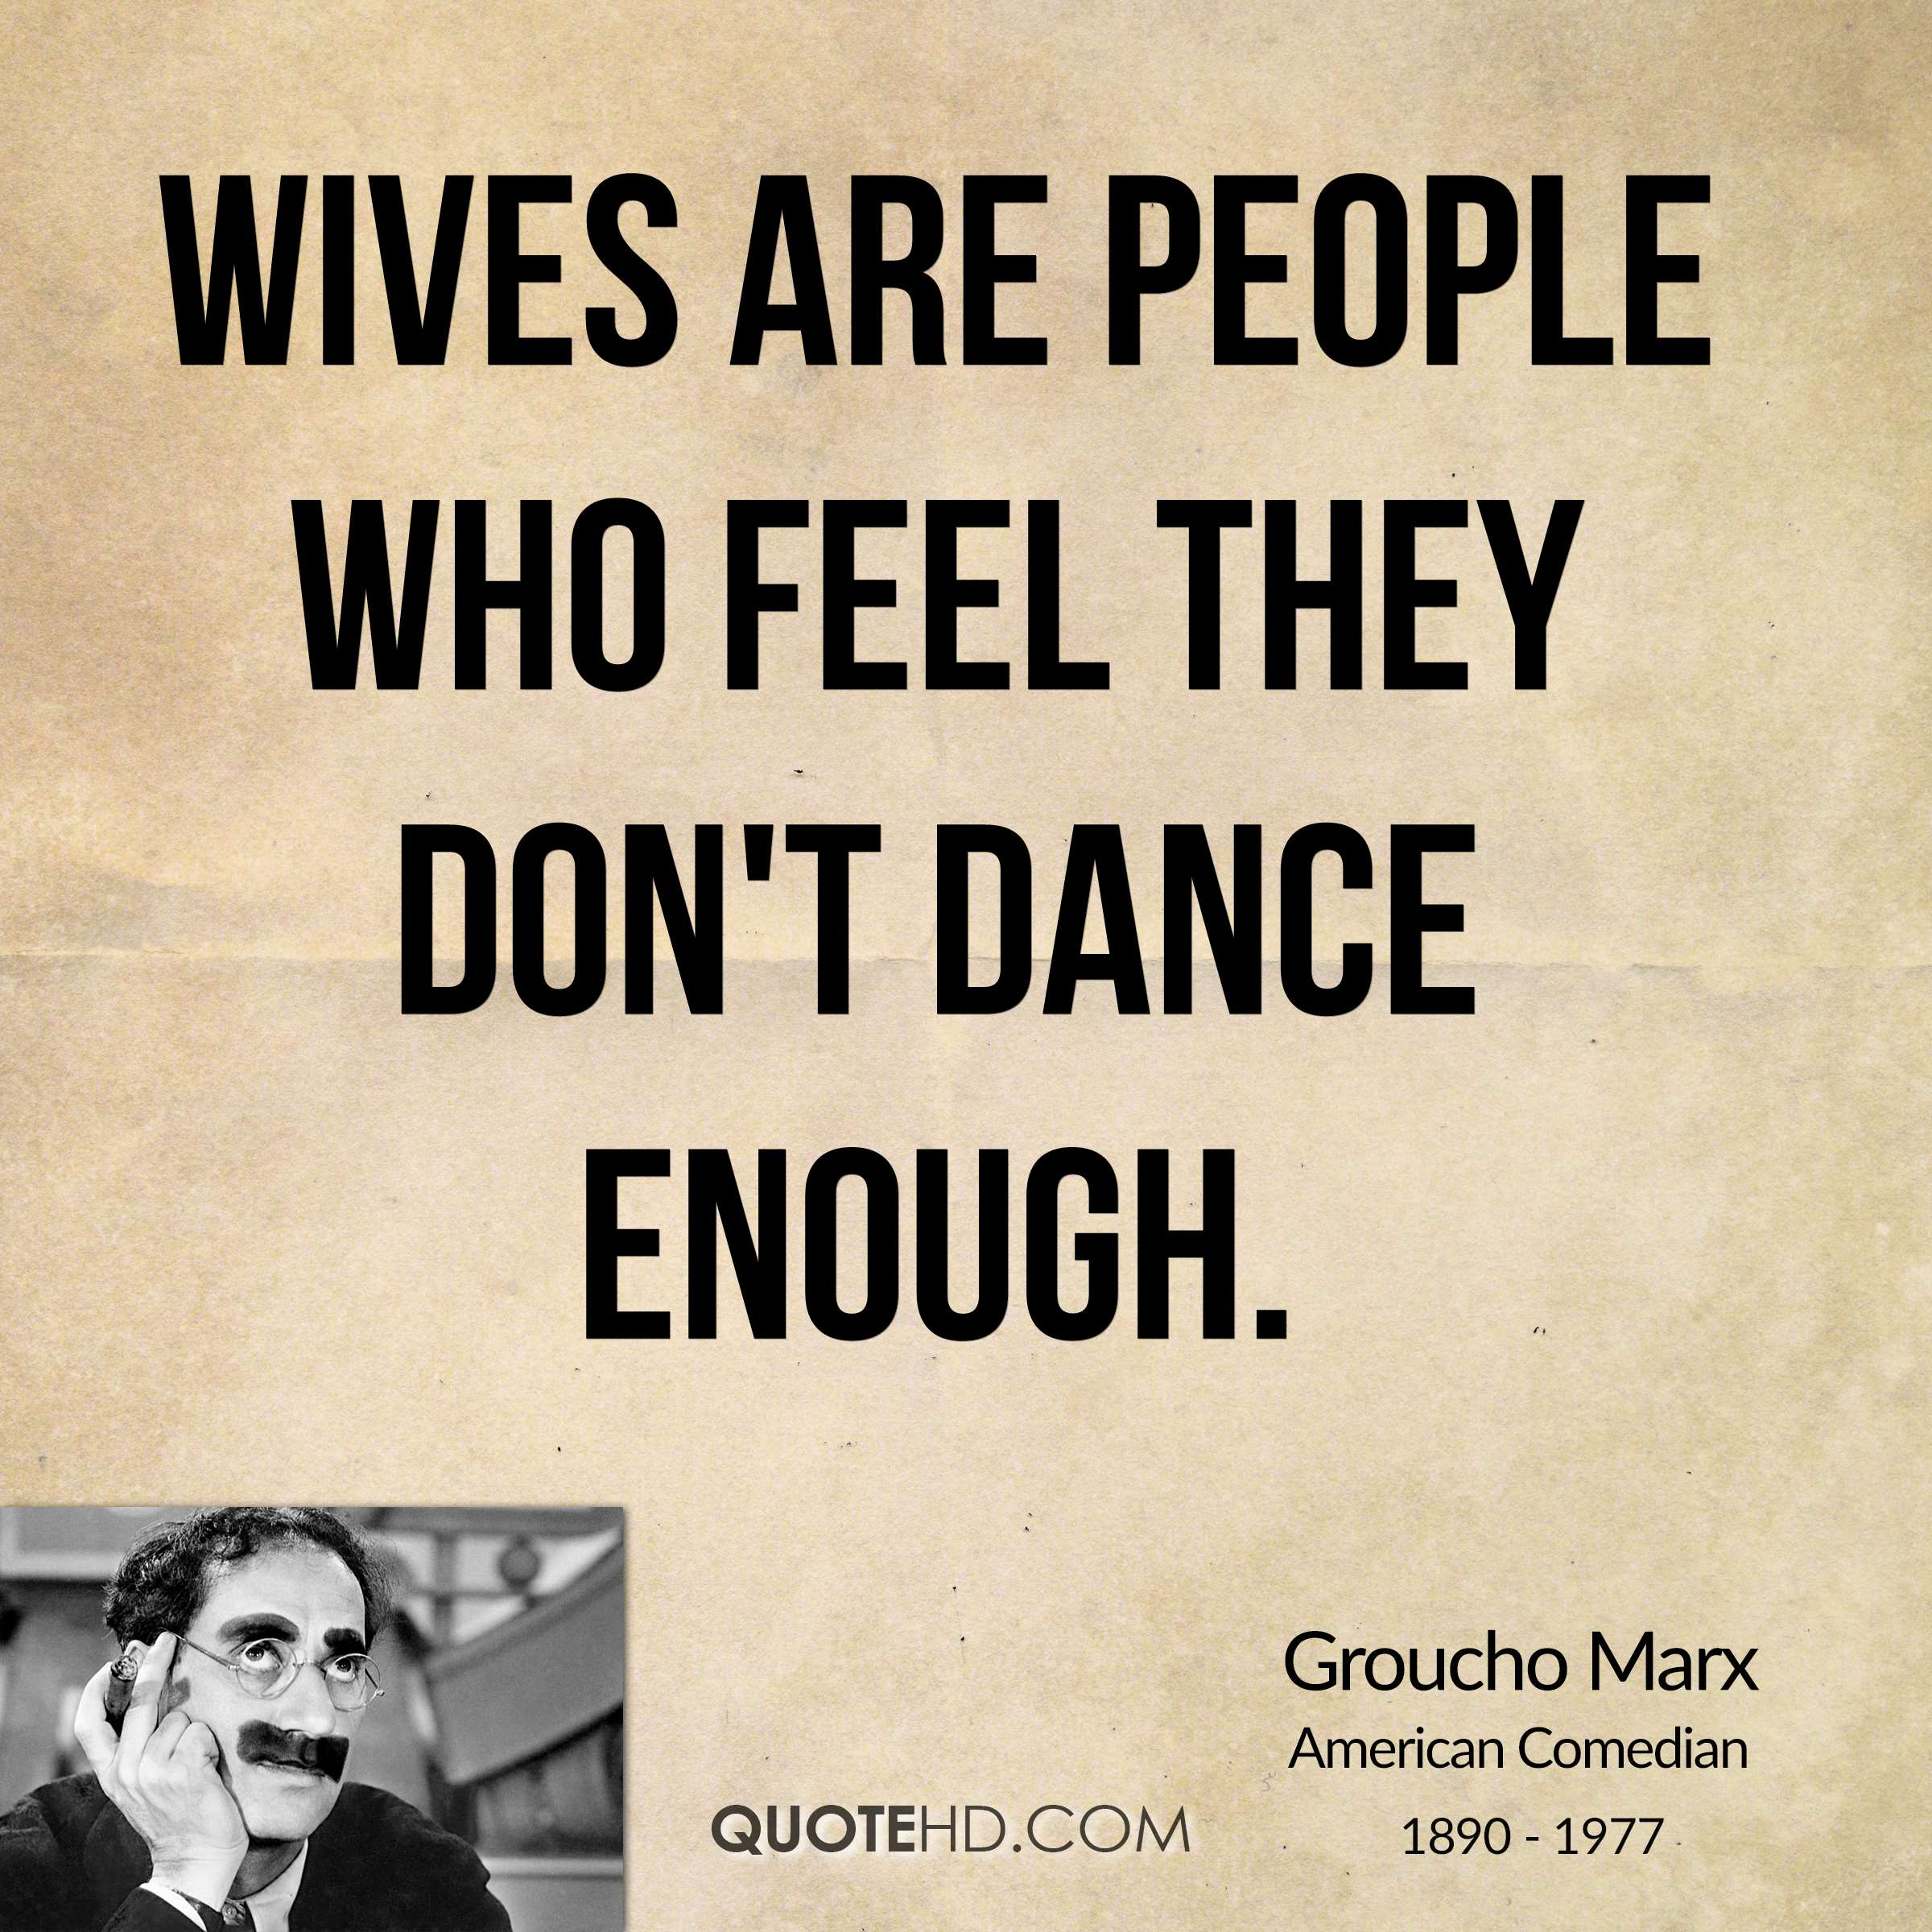 Wives are people who feel they don't dance enough.